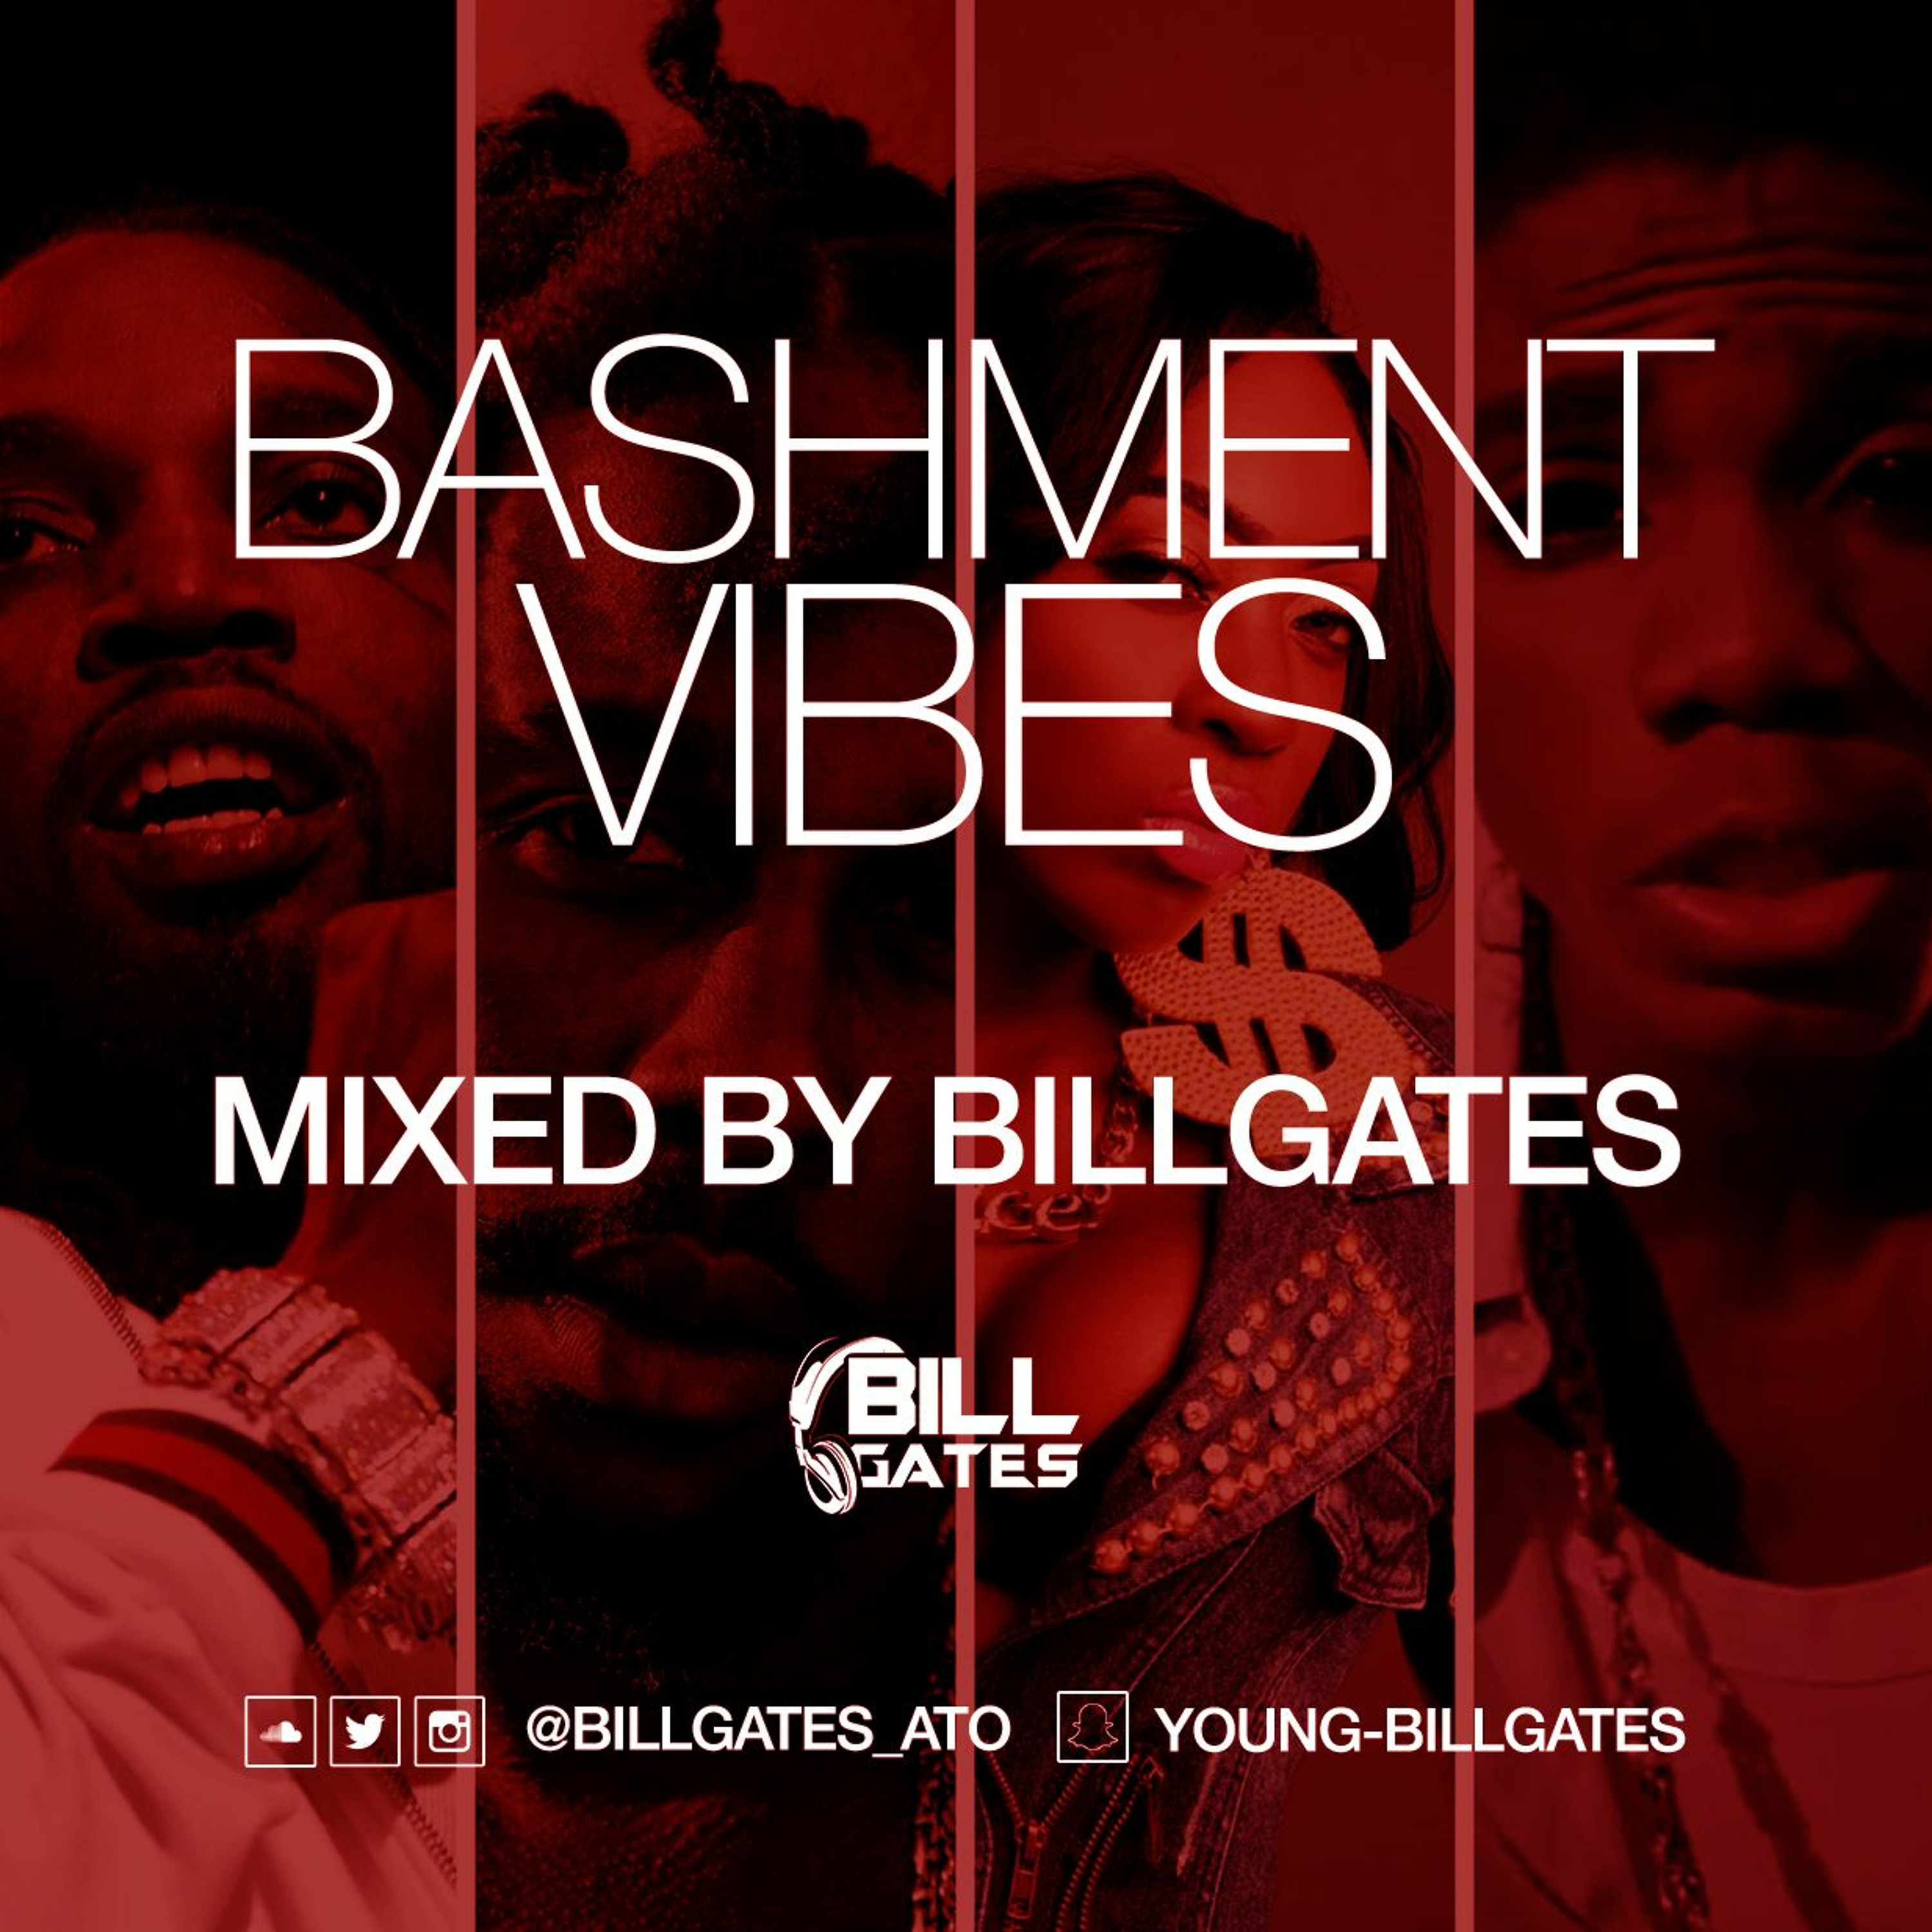 Bashment VIbes Volume 4 Mixed By Spaceship Billy